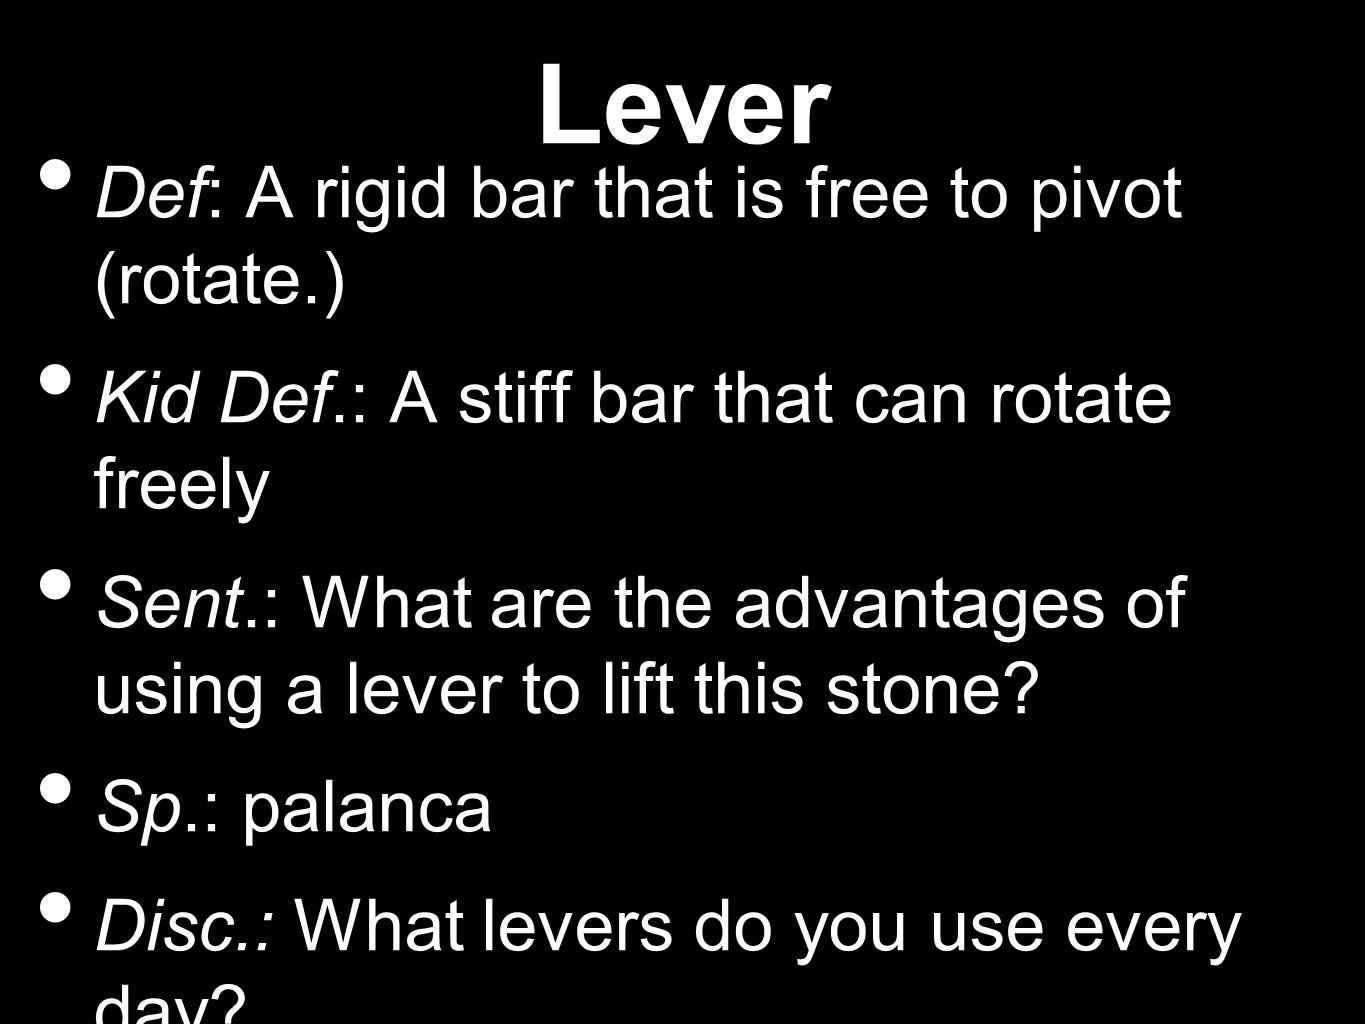 Lever Def: A rigid bar that is free to pivot (rotate.) Kid Def.: A stiff bar that can rotate freely Sent.: What are the advantages of using a lever to lift this stone.